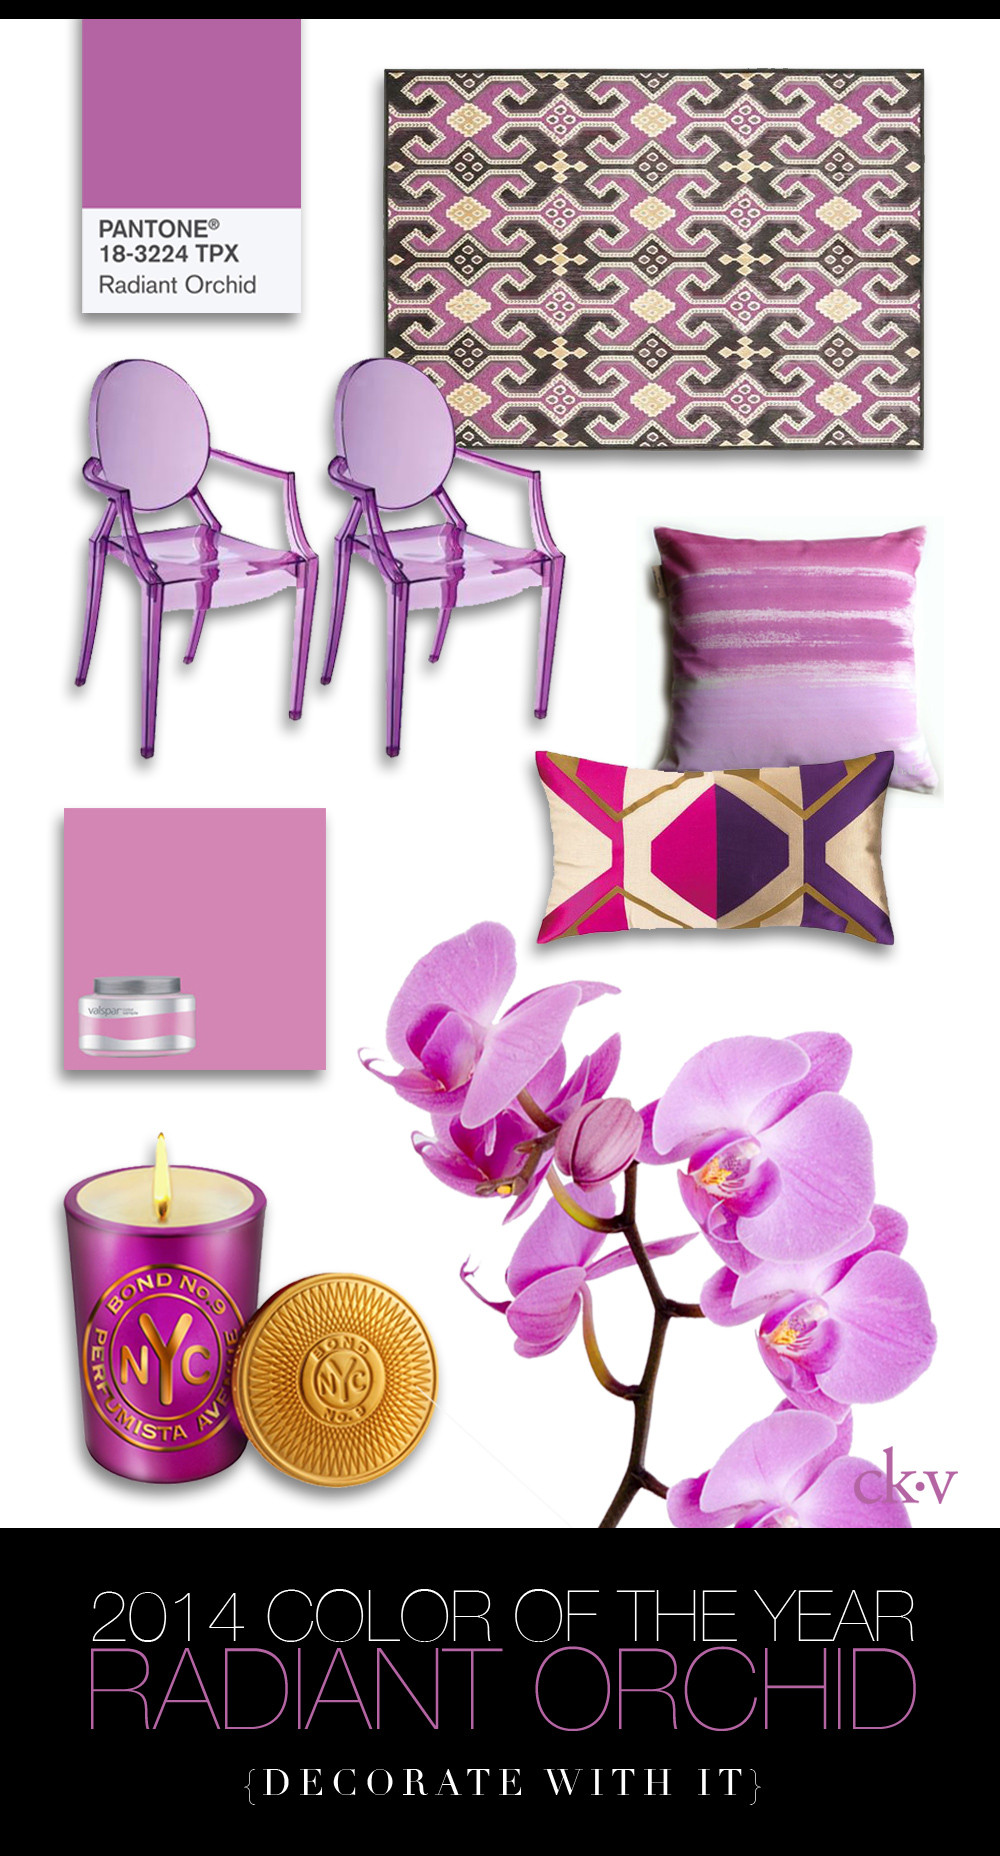 Mardi Gras Orchid ,  Valspar 8-oz Pantone Wild Orchid Interior Satin Paint Sample ,  Baby Anime Transparent Purple Kids Armchairs ,   Modern Hand Printed 16 x 16 Cotton Pillow Cover  ,  'Perfumista Avenue' Scented Candle ,  Safavieh Paradise Purple Viscose Rug,   Trina Turk Pillow